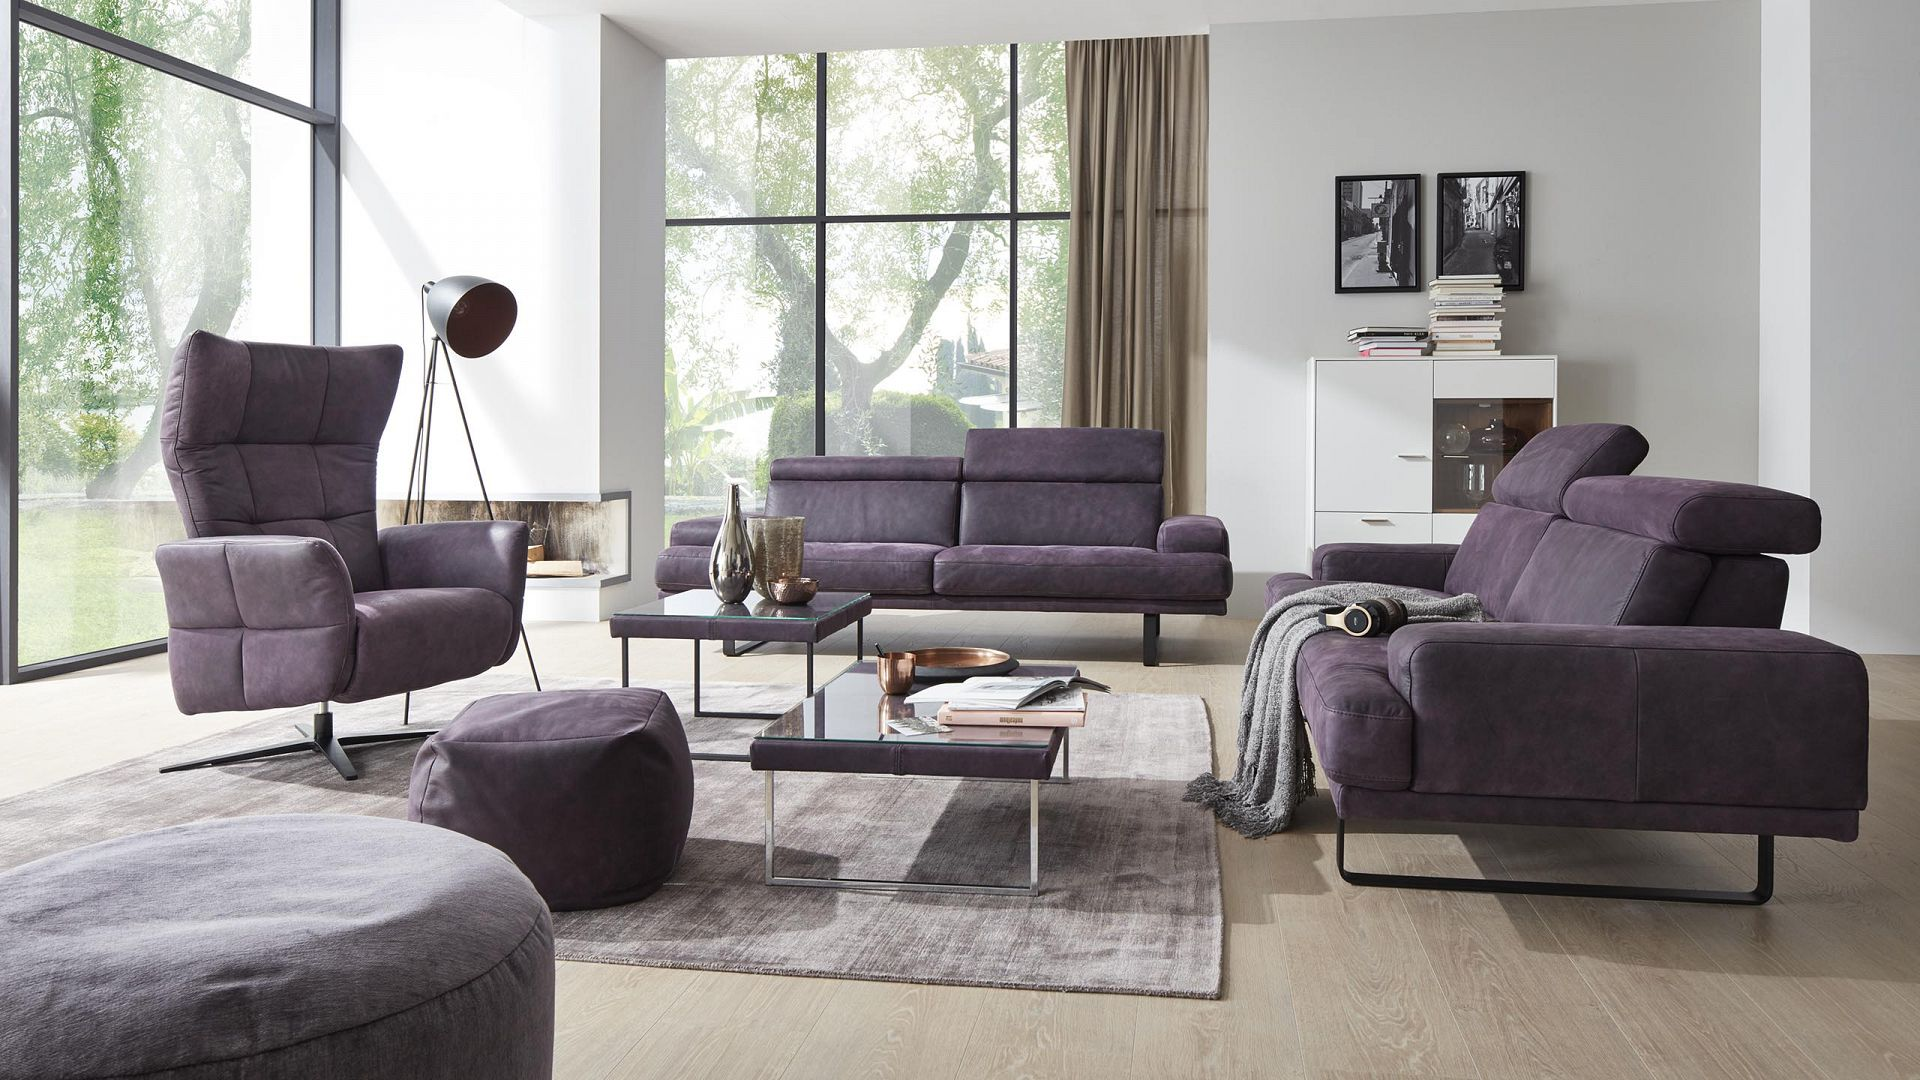 Interliving Sofa Serie 4152